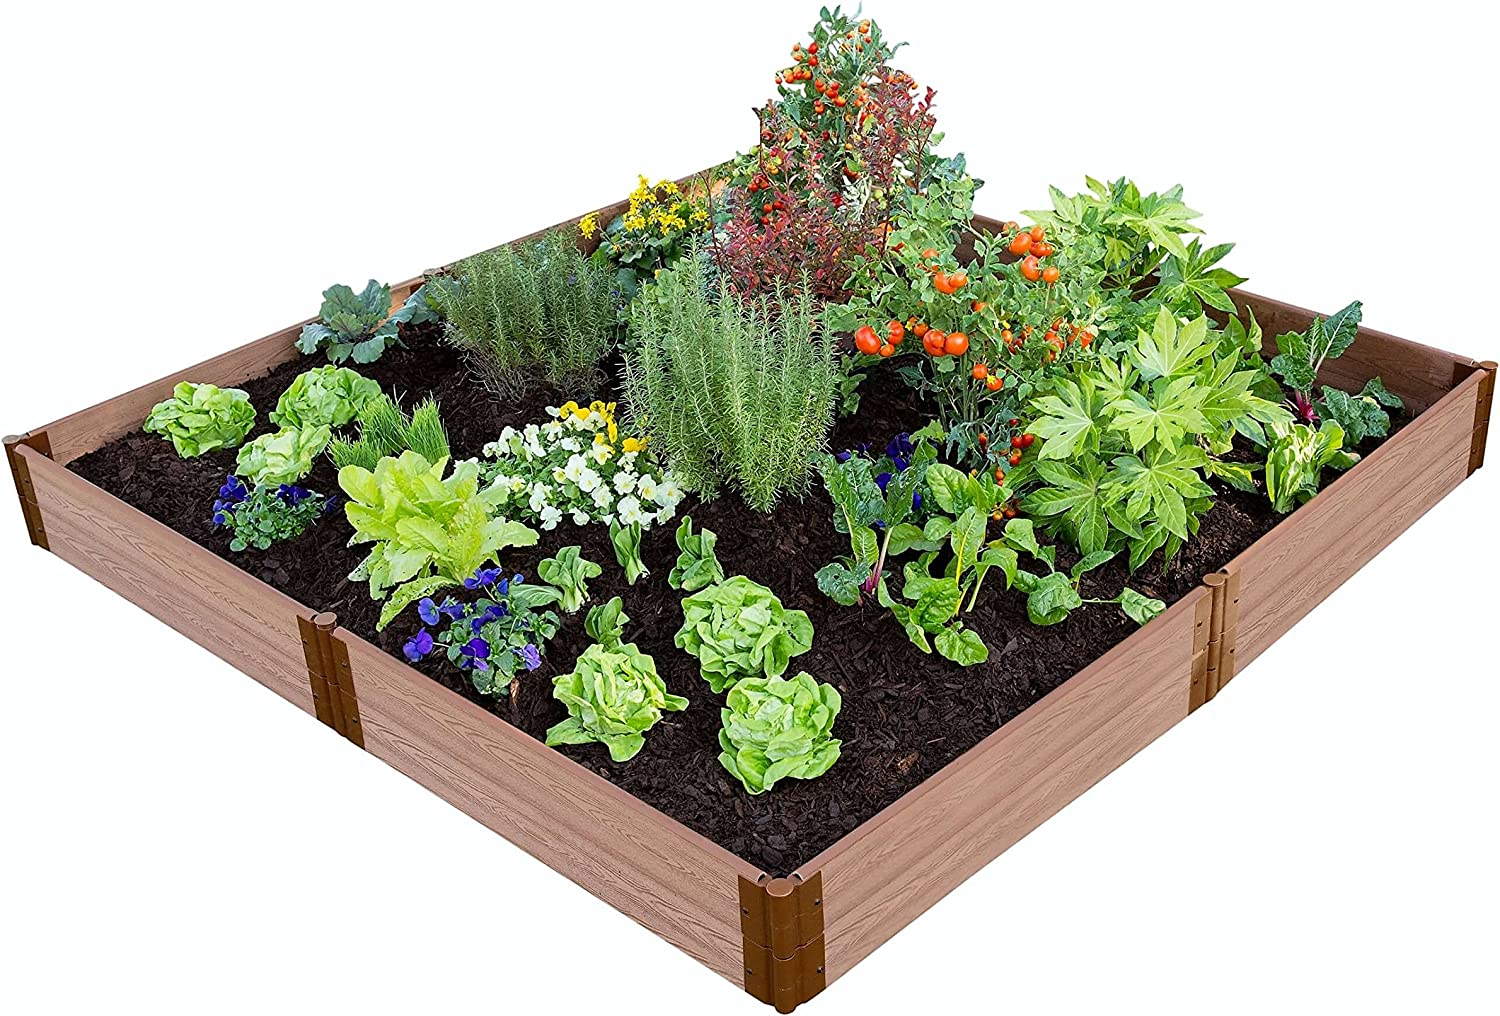 Composite Raised Garden Bed Kit Expandable Natural One Inch Series 4 Square ft